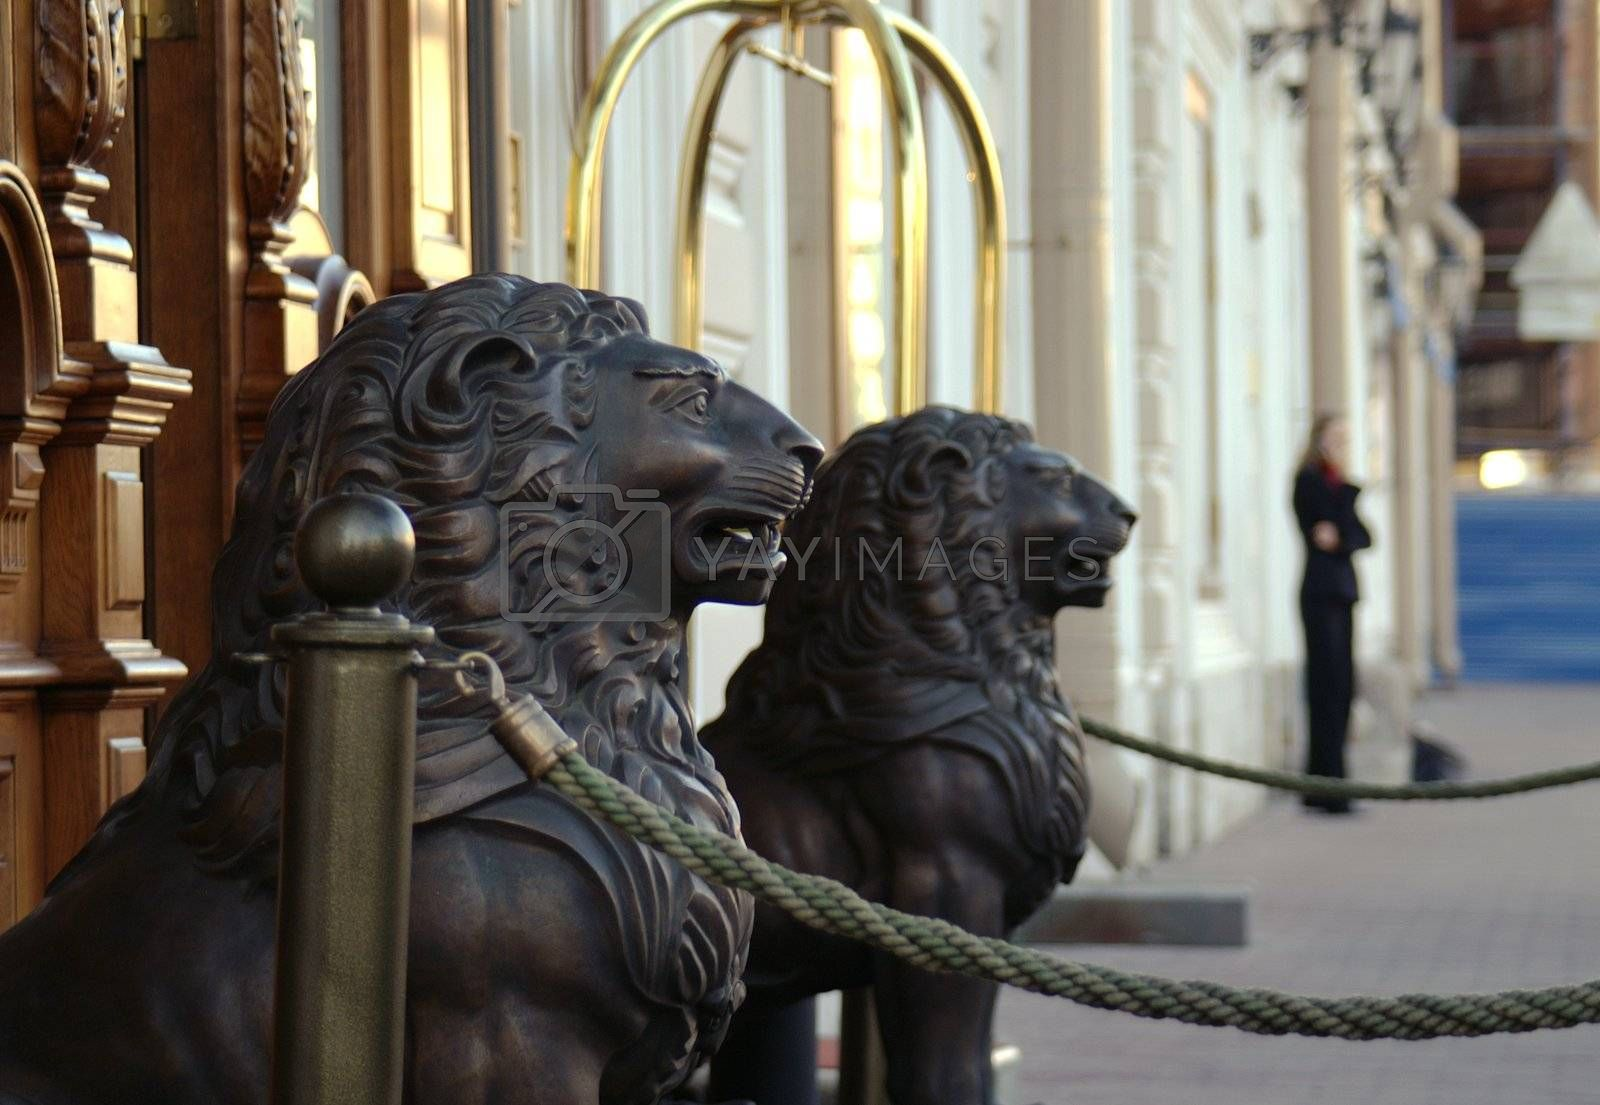 Wooden lion sculptures at the entrance of a hotel.